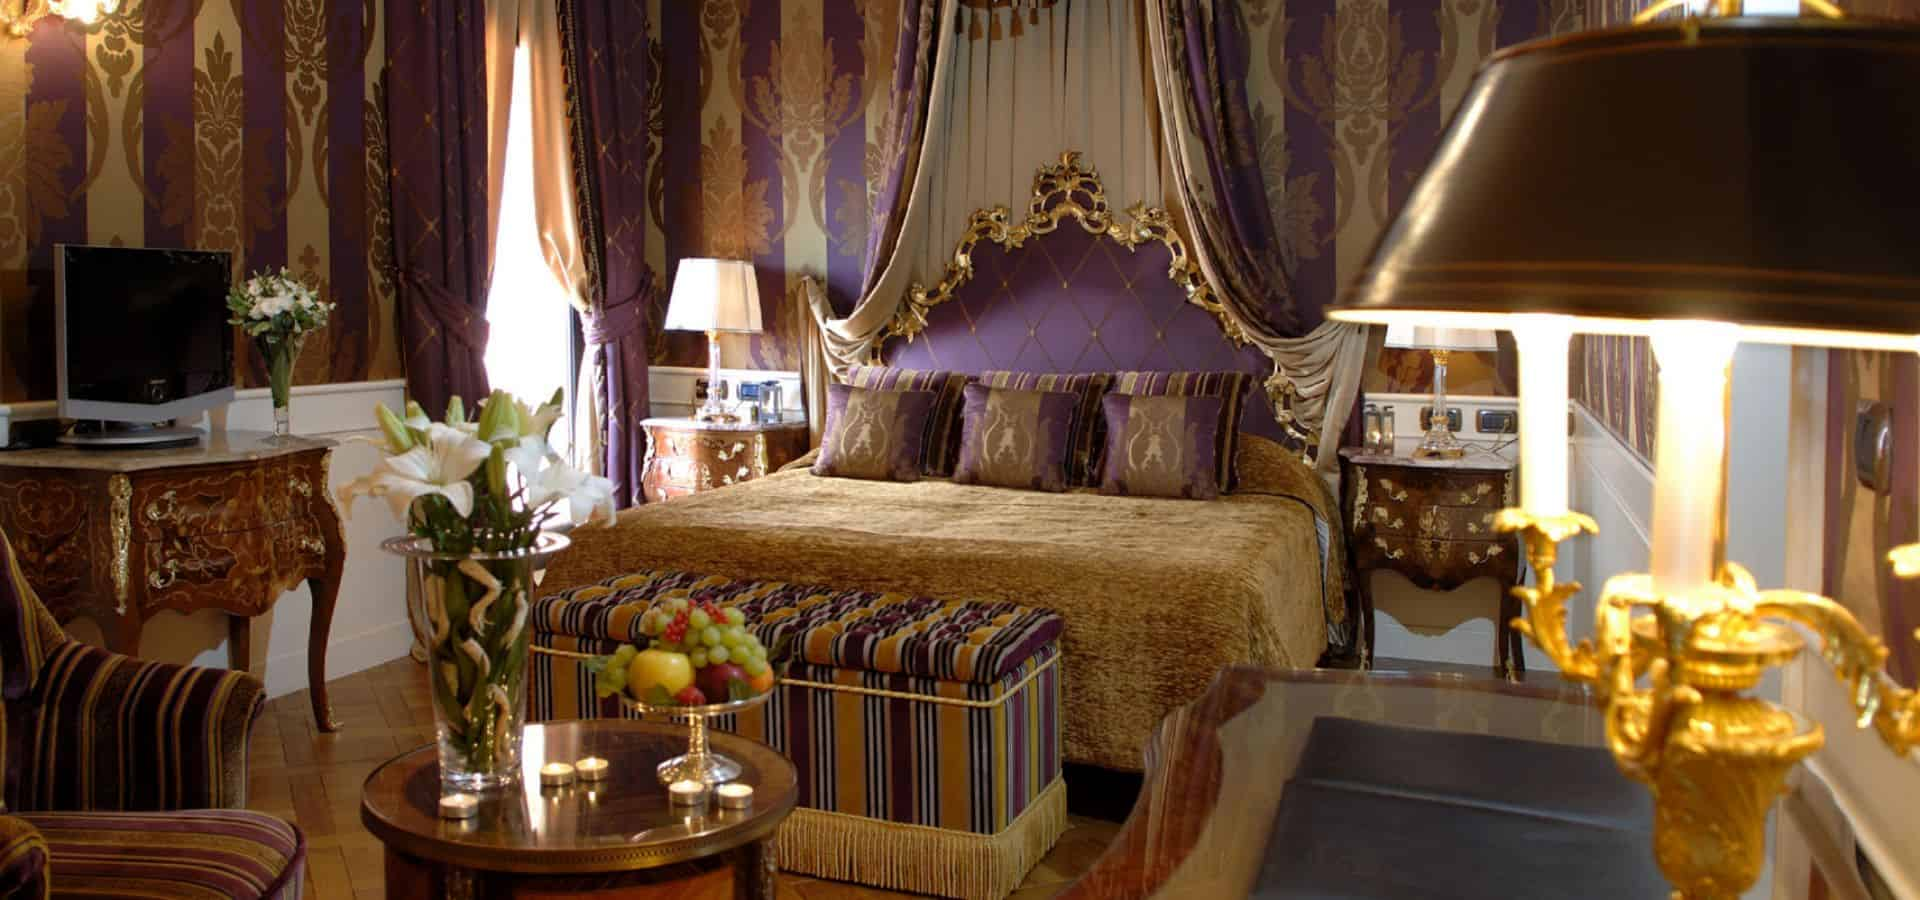 Grand Hotel Majestic Gia Baglioni Junior Suite